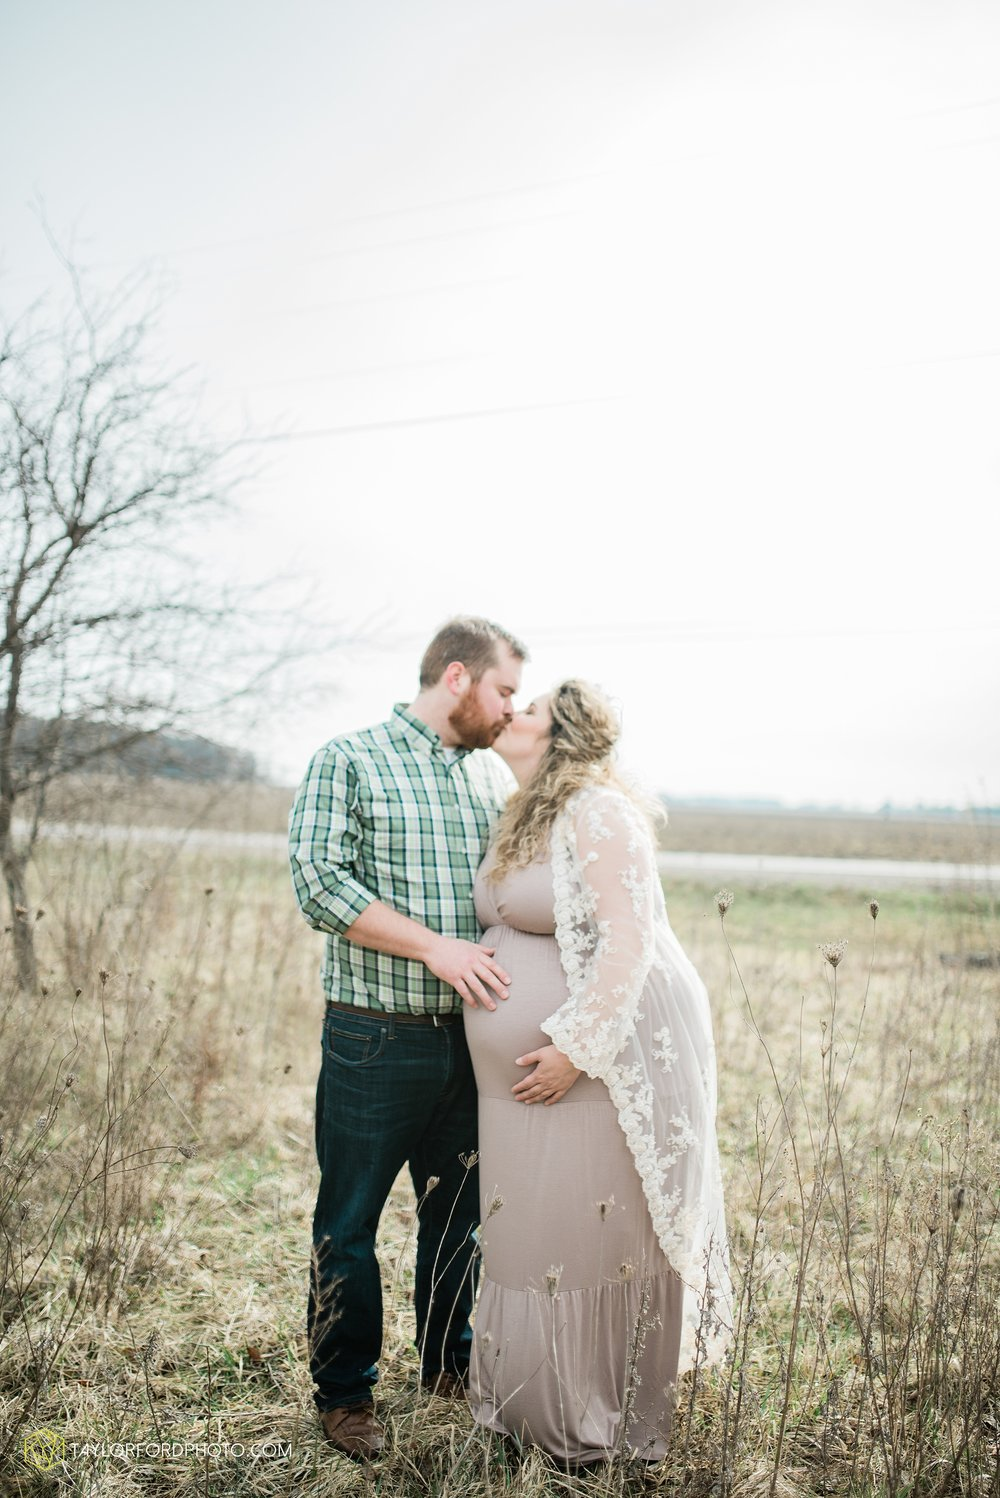 quincy-thompson-van-wert-ohio-maternity-photographer-indiana-Taylor-Ford-Photography_6634.jpg